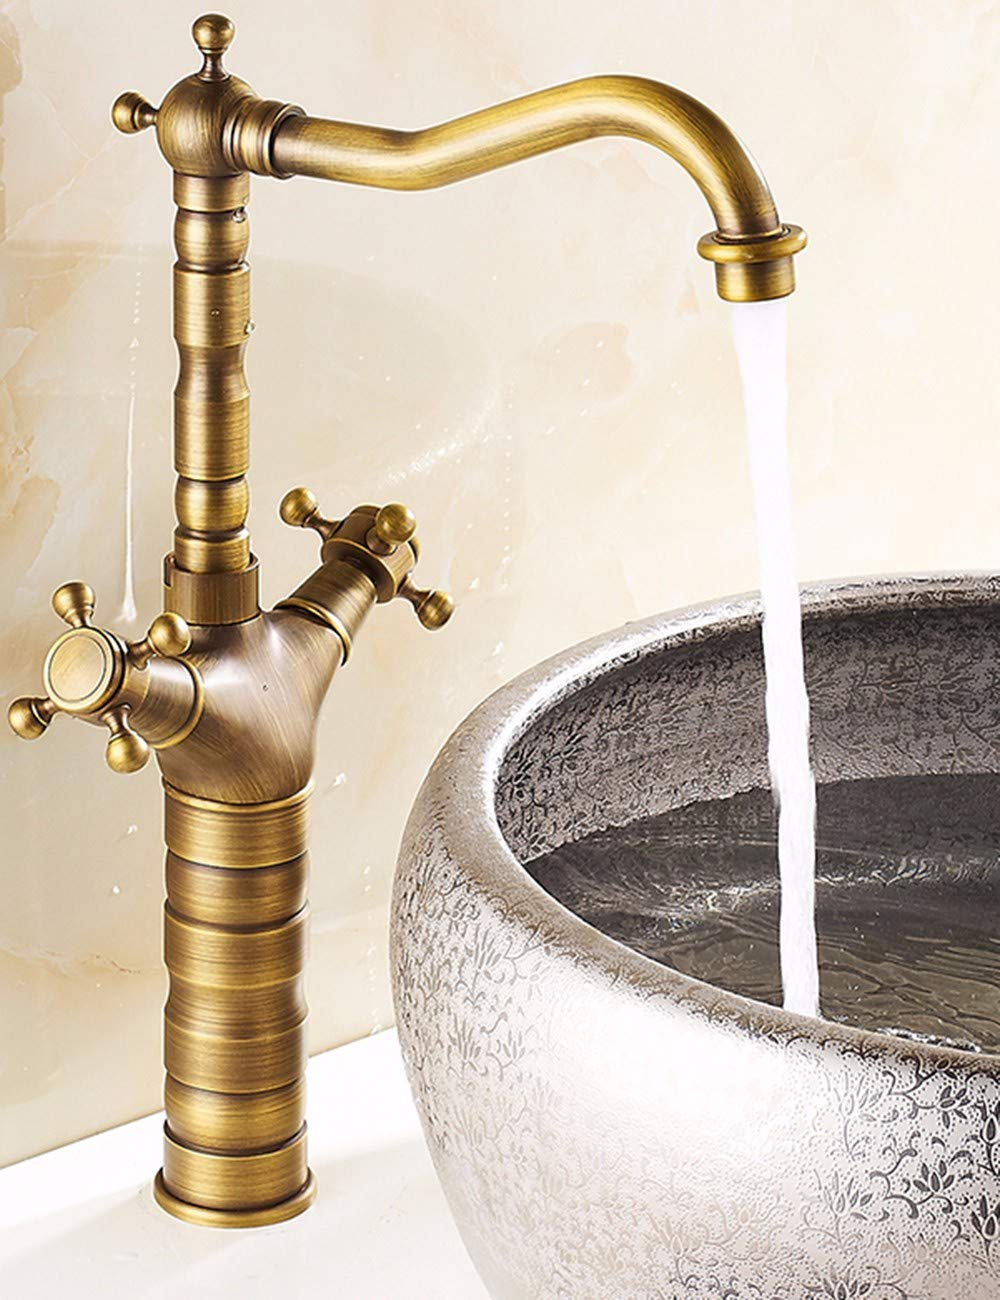 B Hlluya Professional Sink Mixer Tap Kitchen Faucet Faucet antique table basin mixer full brass faucets plus high-leading taps, B